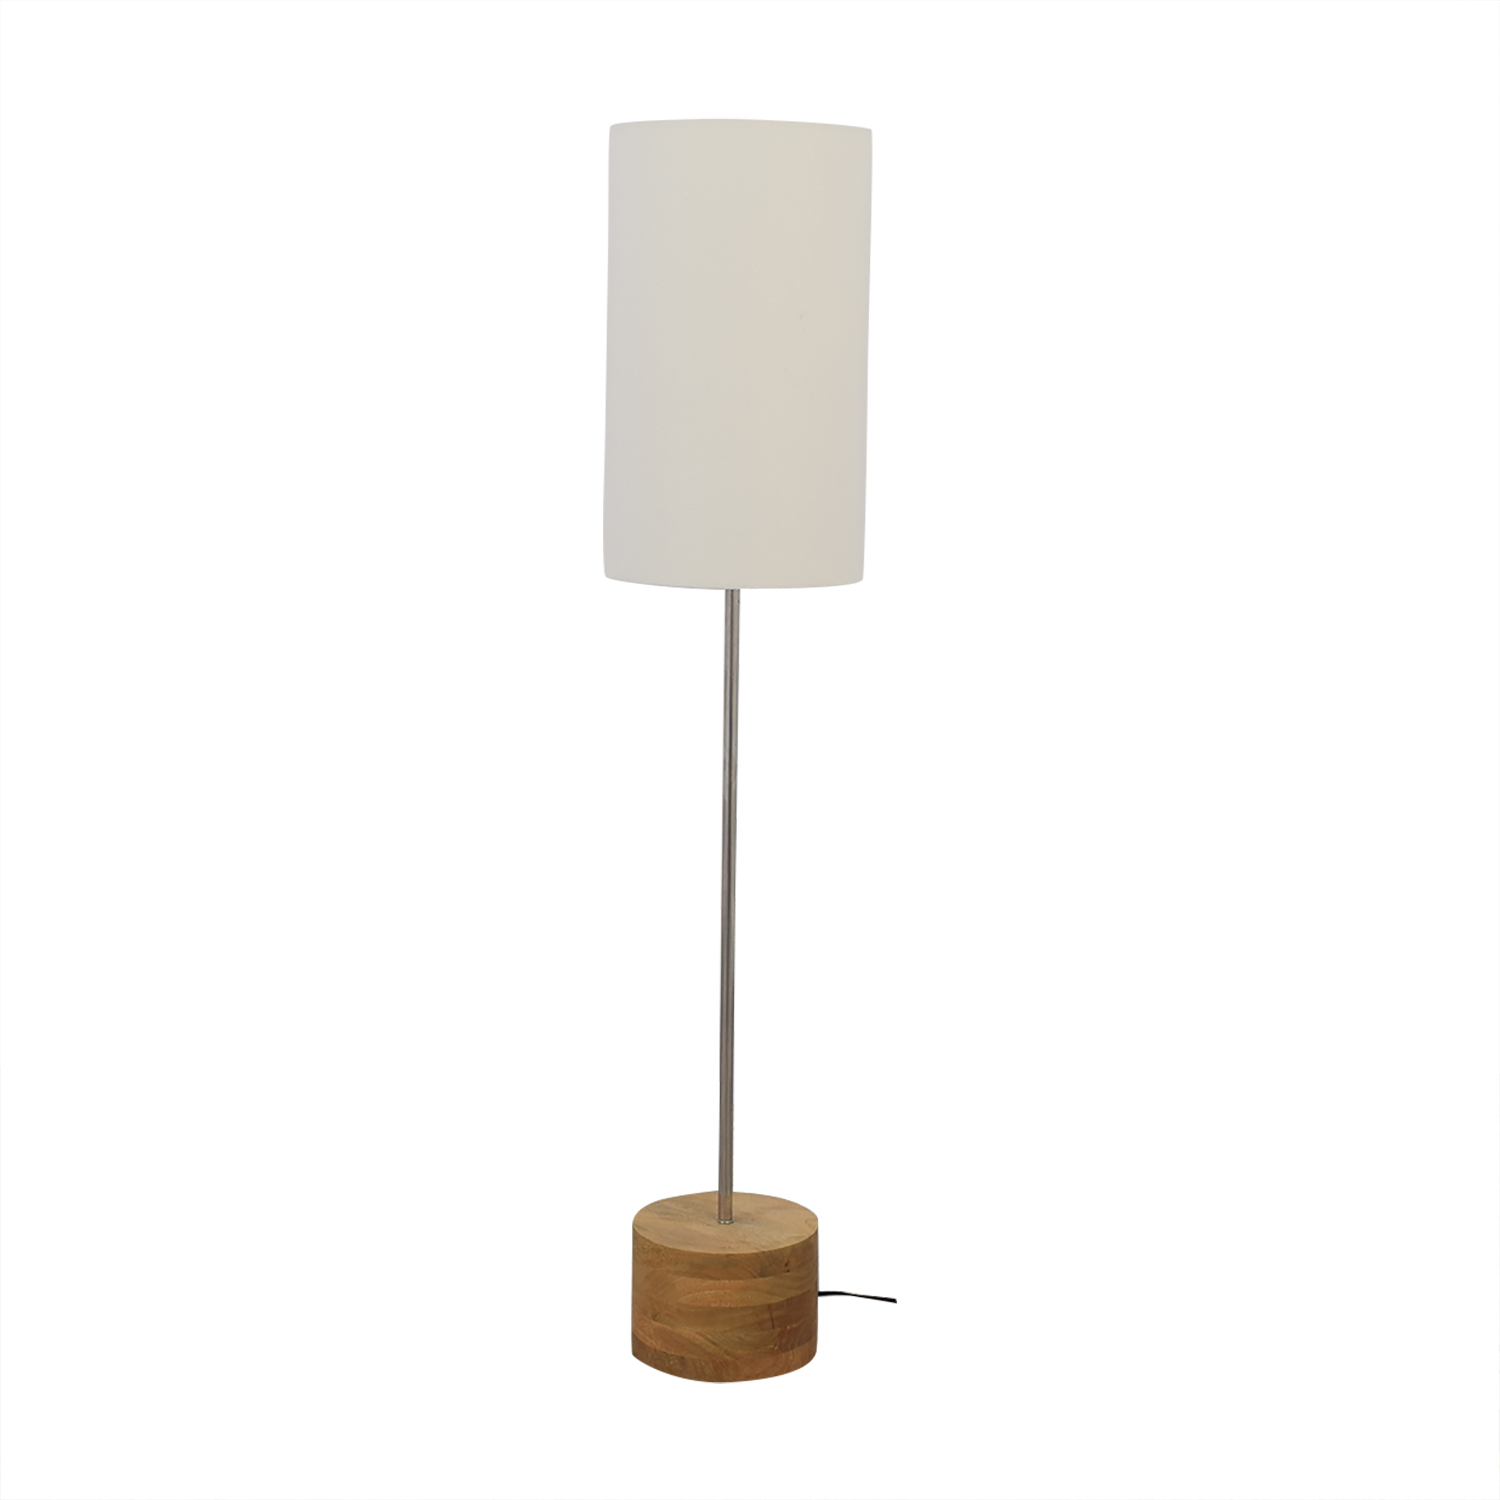 Crate & Barrel Crate & Barrel Tribeca Floor Lamp white & brown